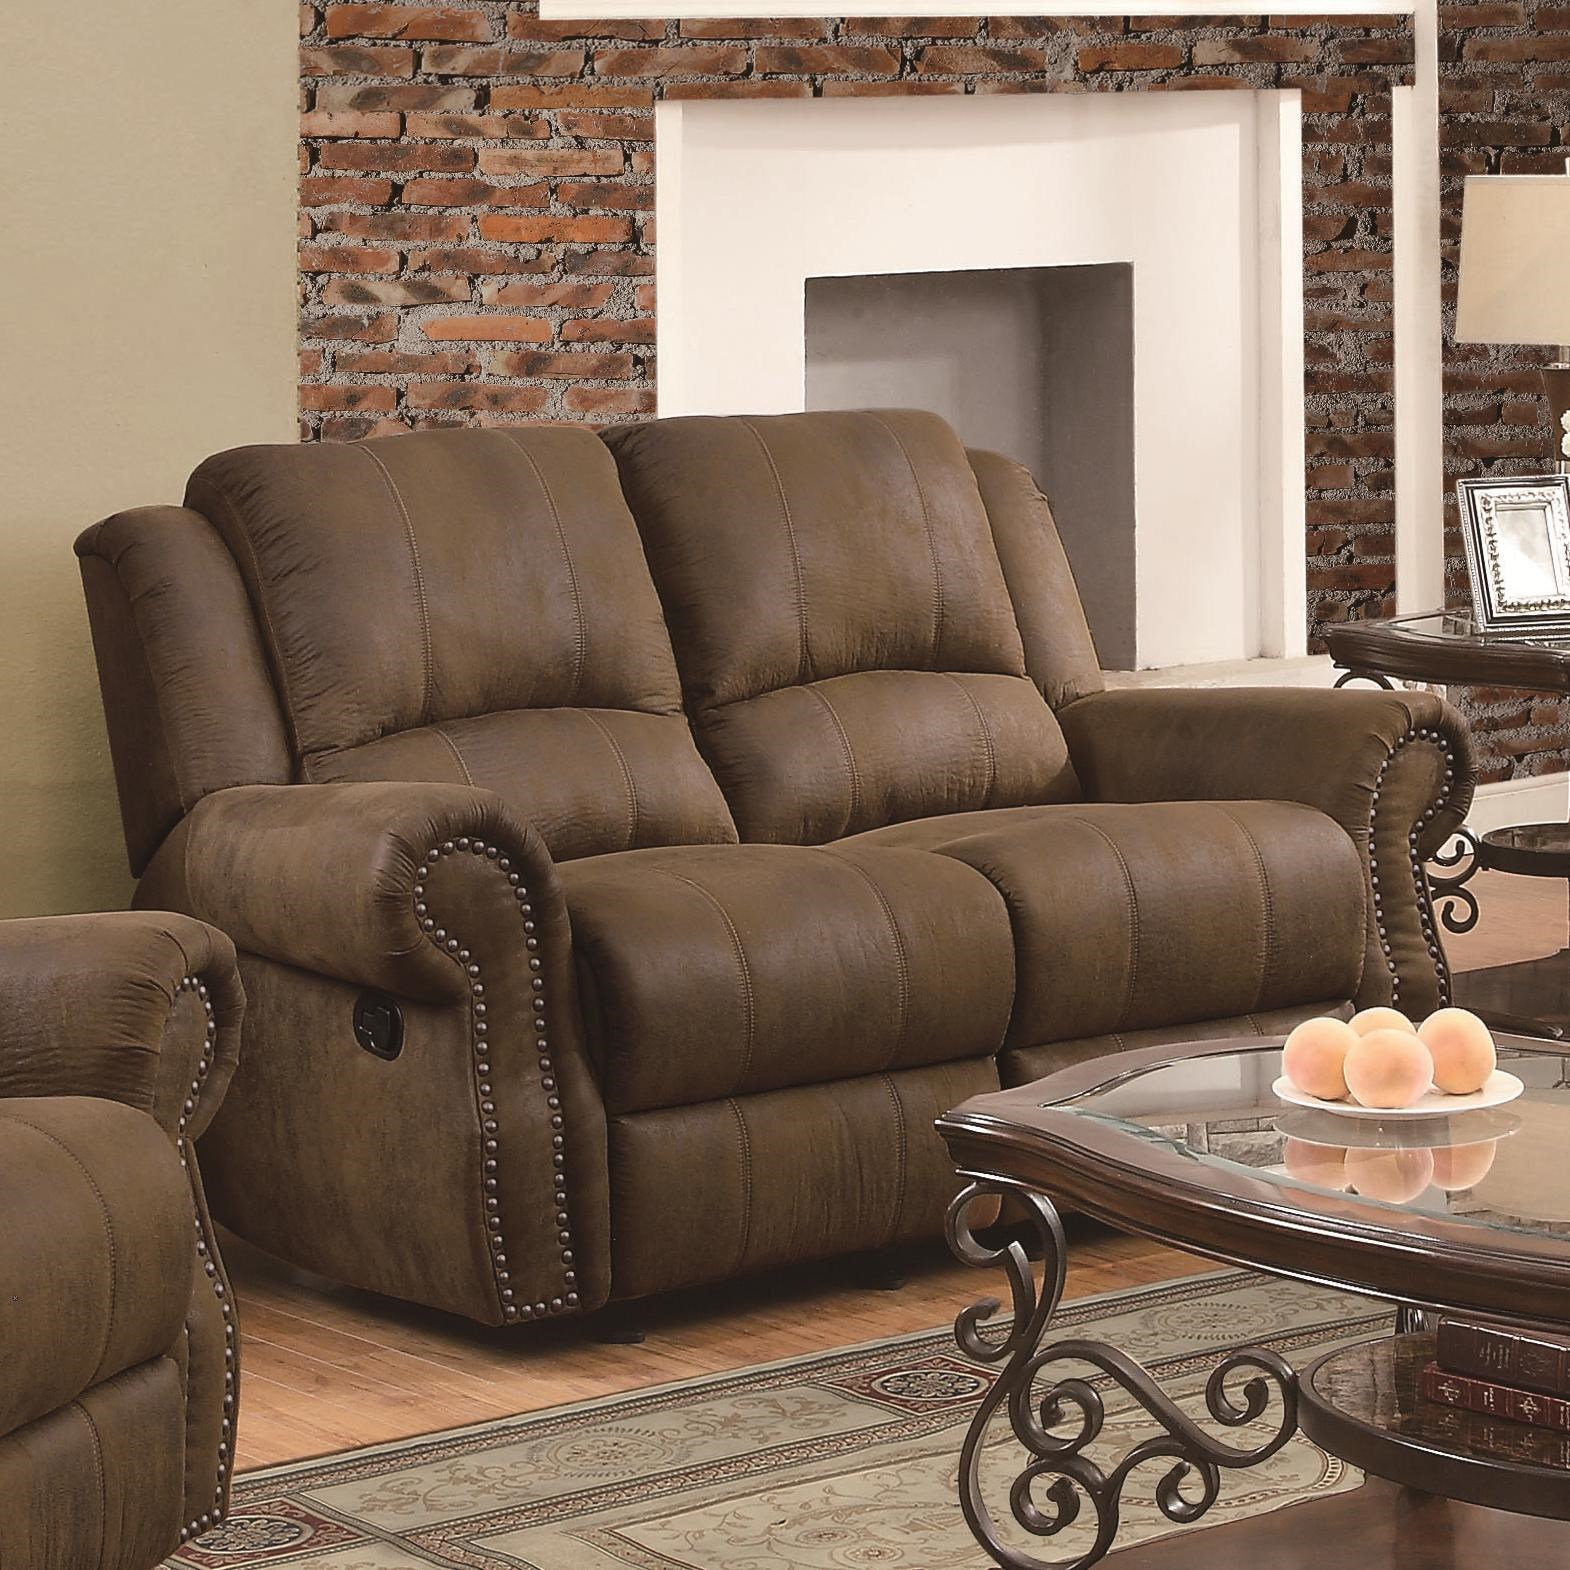 Traditional Gliding Reclining Love Seat with Nailhead Studs